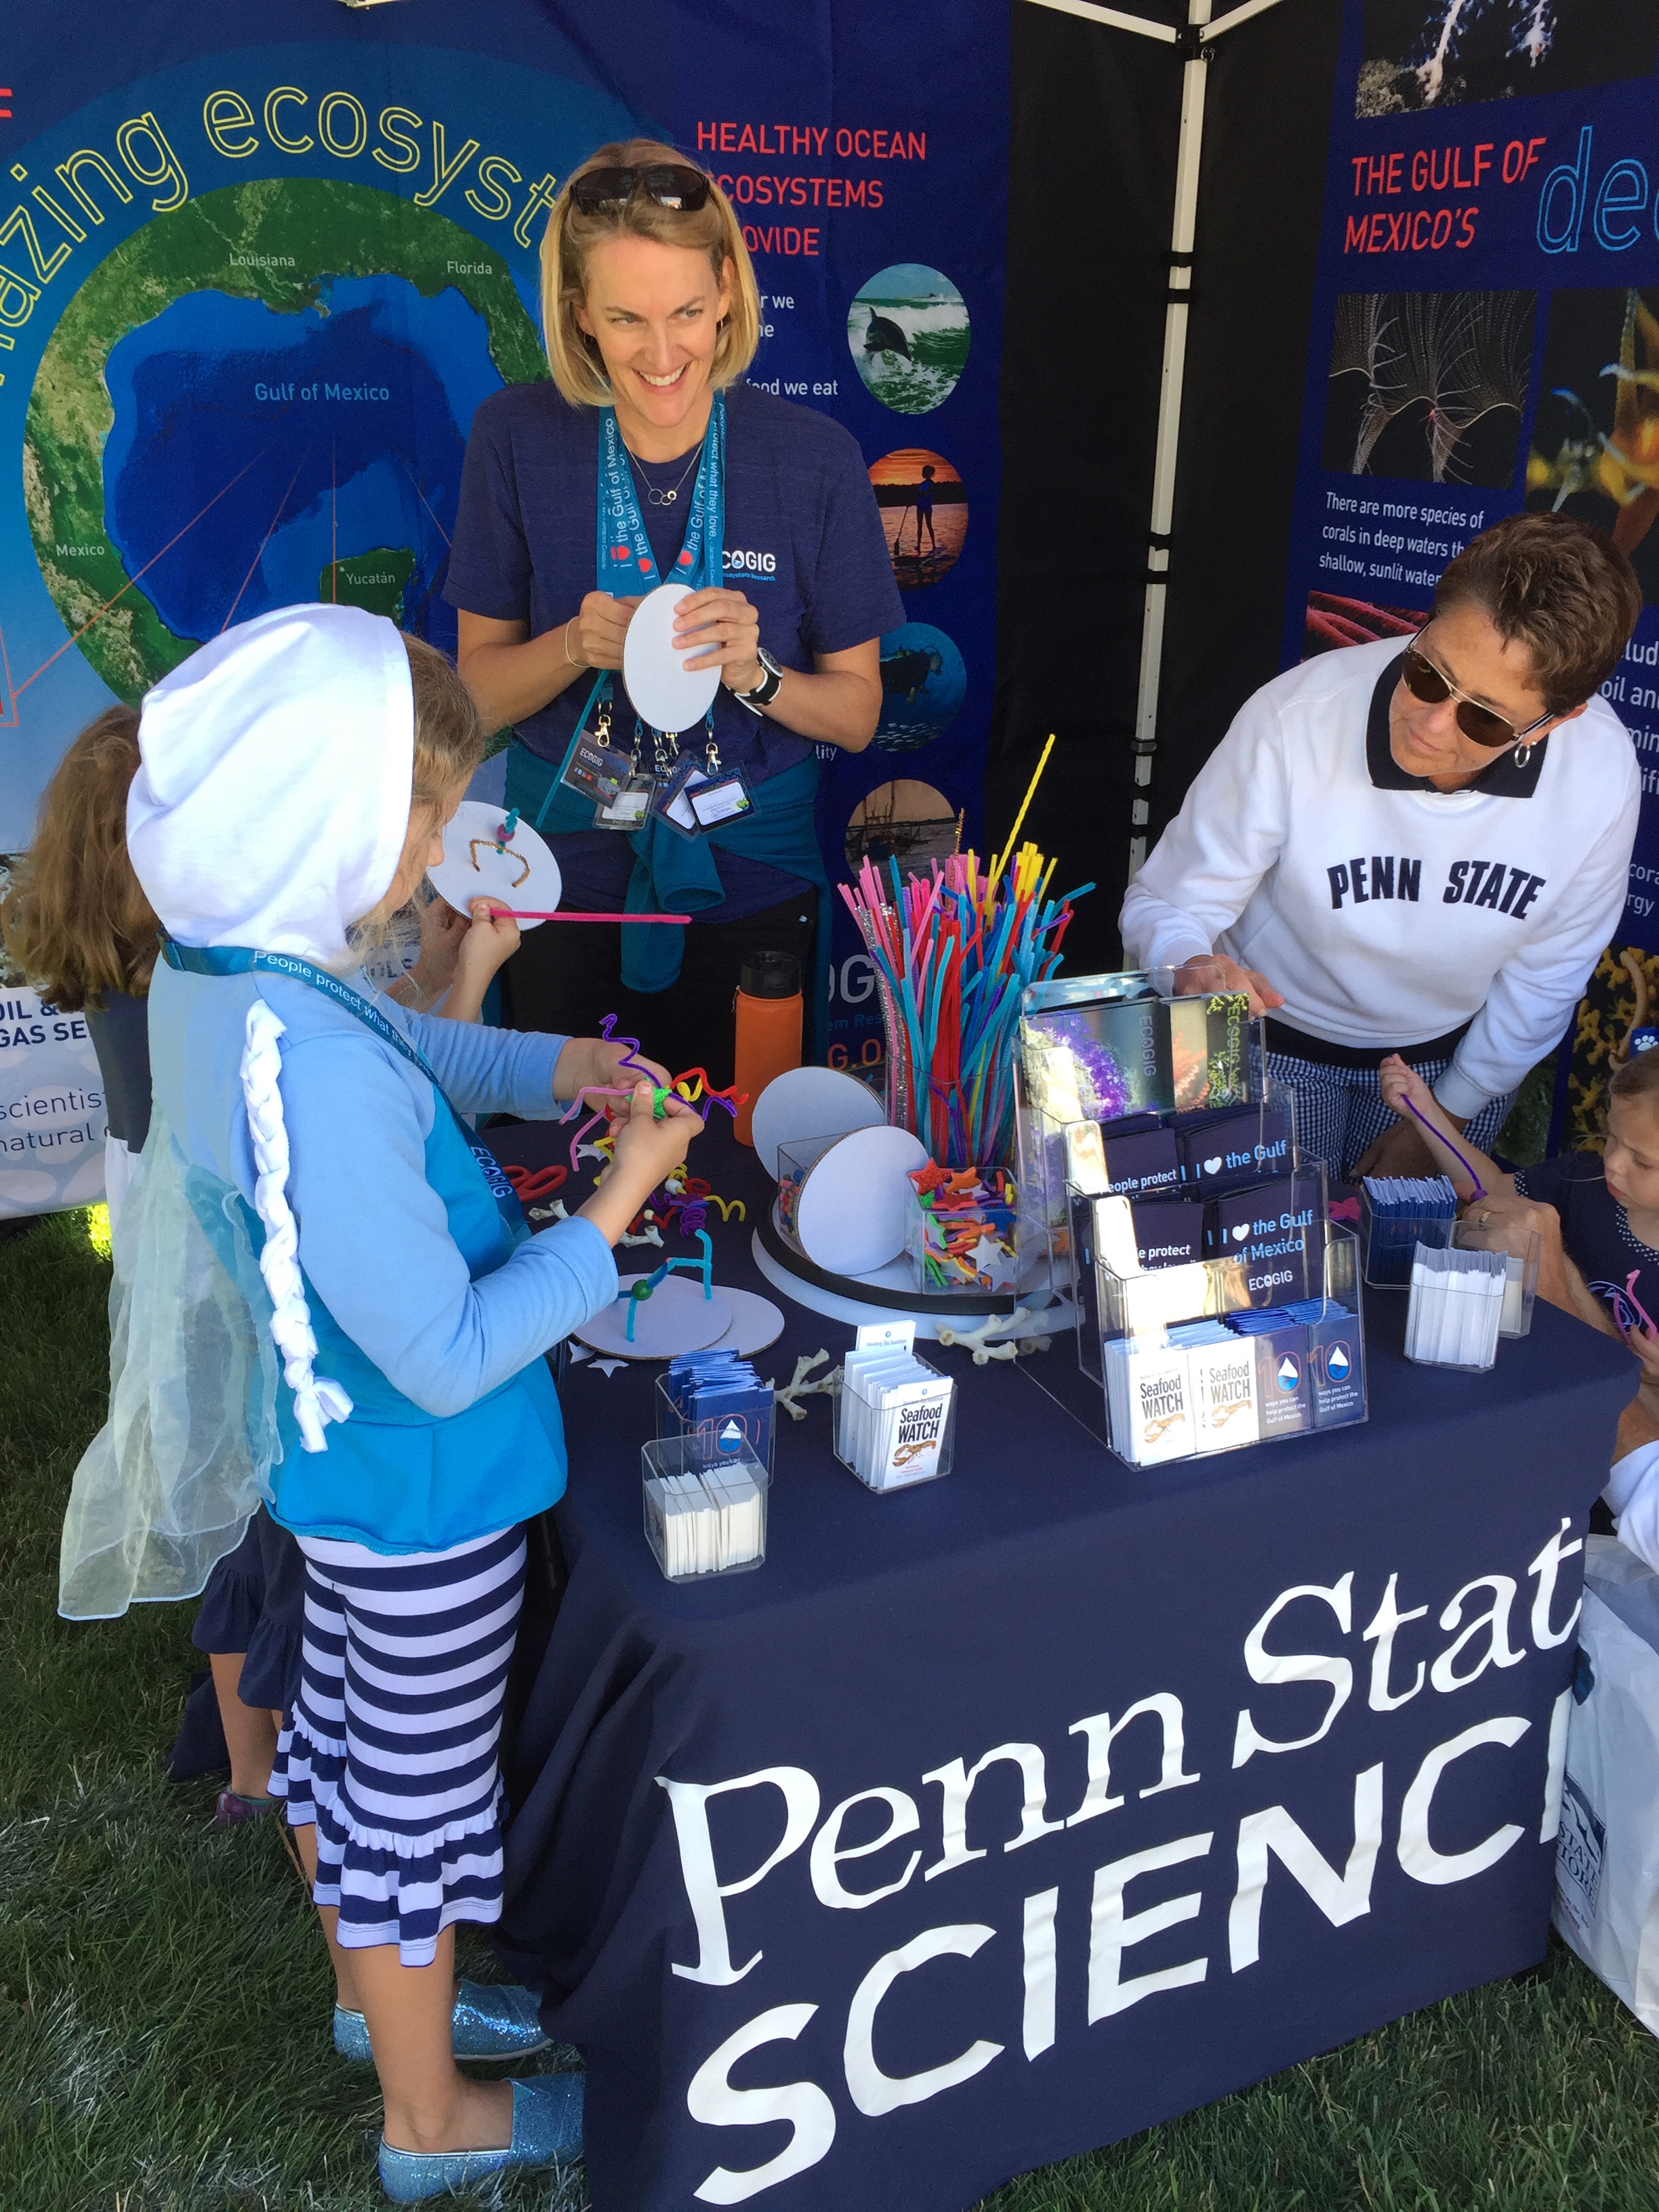 <div style='color:#000000;'><br /><br /><h2>2016 Penn State Fan Fest. Building a deep water coral!</h2>(c) ECOGIG</div>